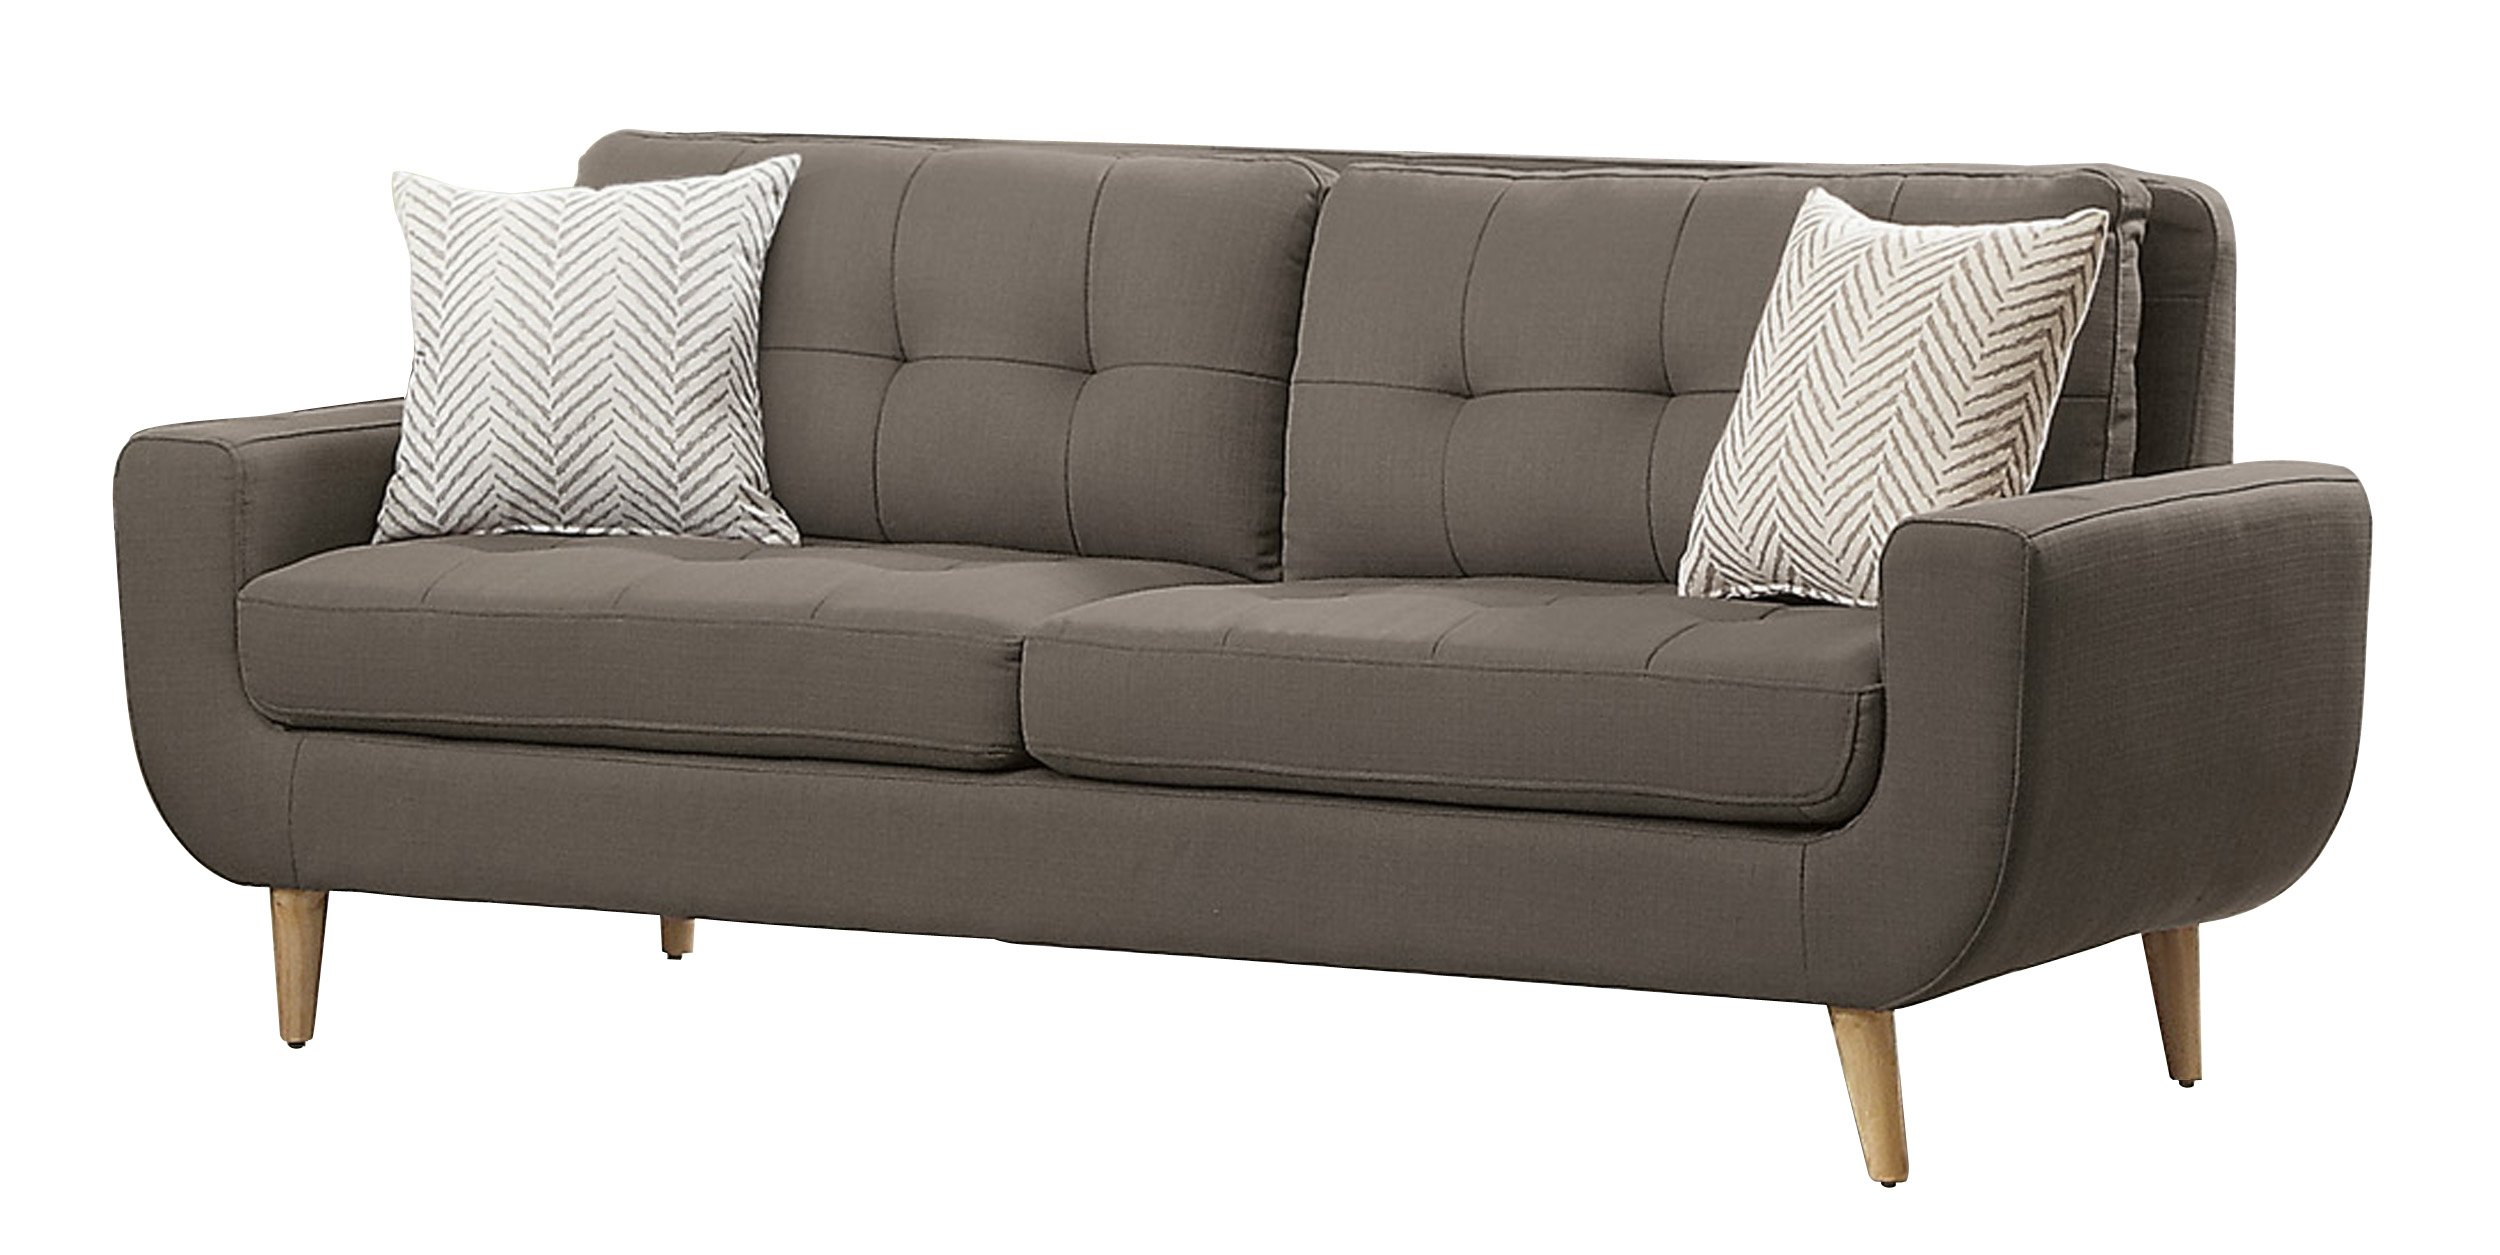 Homelegance Deryn Mid-Century Modern Sofa with Tufted Back and Two Herringbone Throw Pillows, Grey